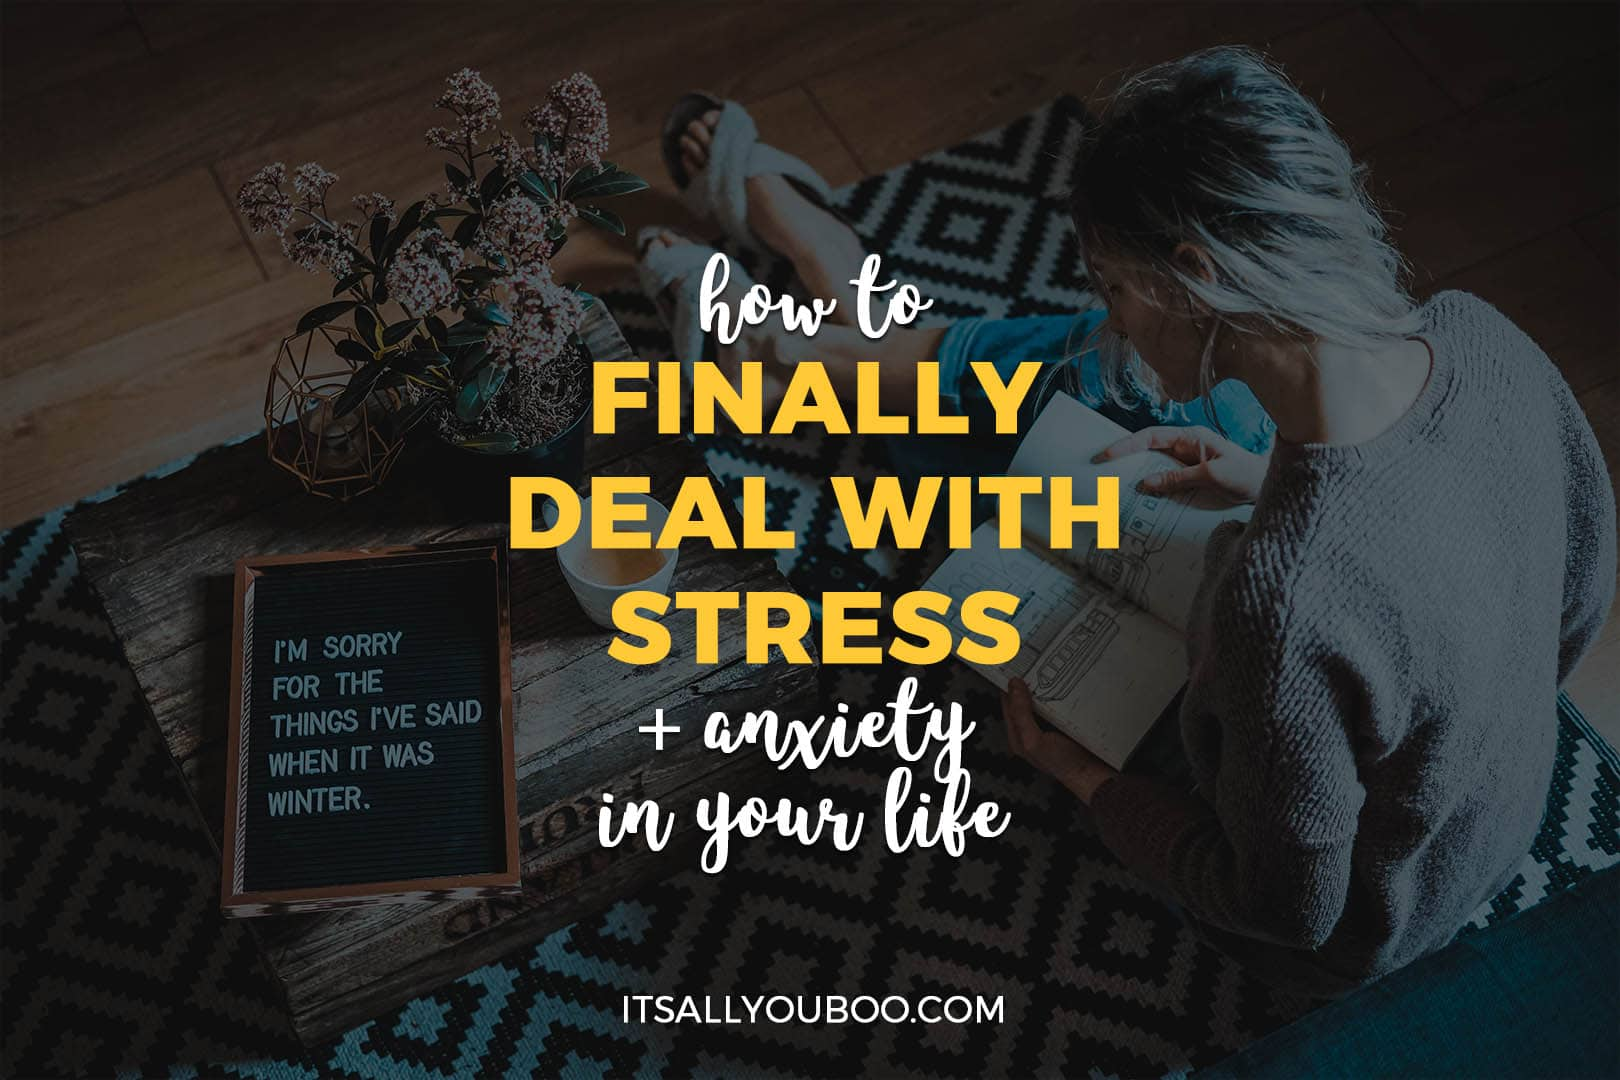 How to Deal with Stress and Anxiety in Your Life